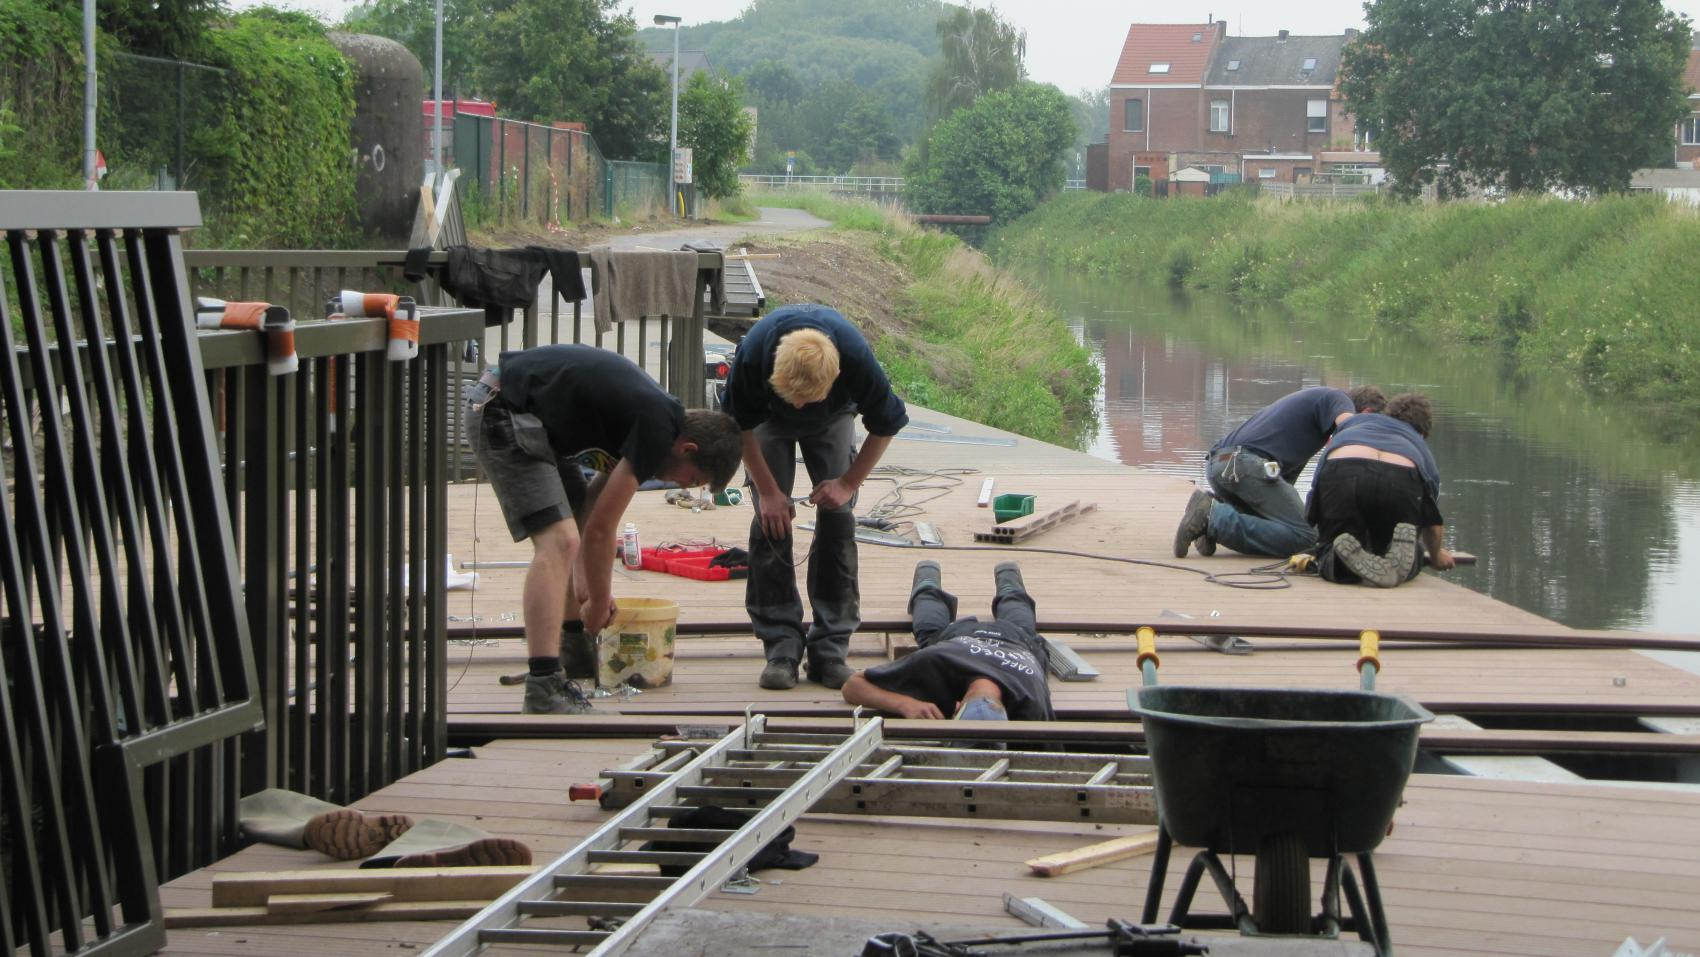 July 2014: installation of composite decking. Photo credit: Provincie Antwerpen.